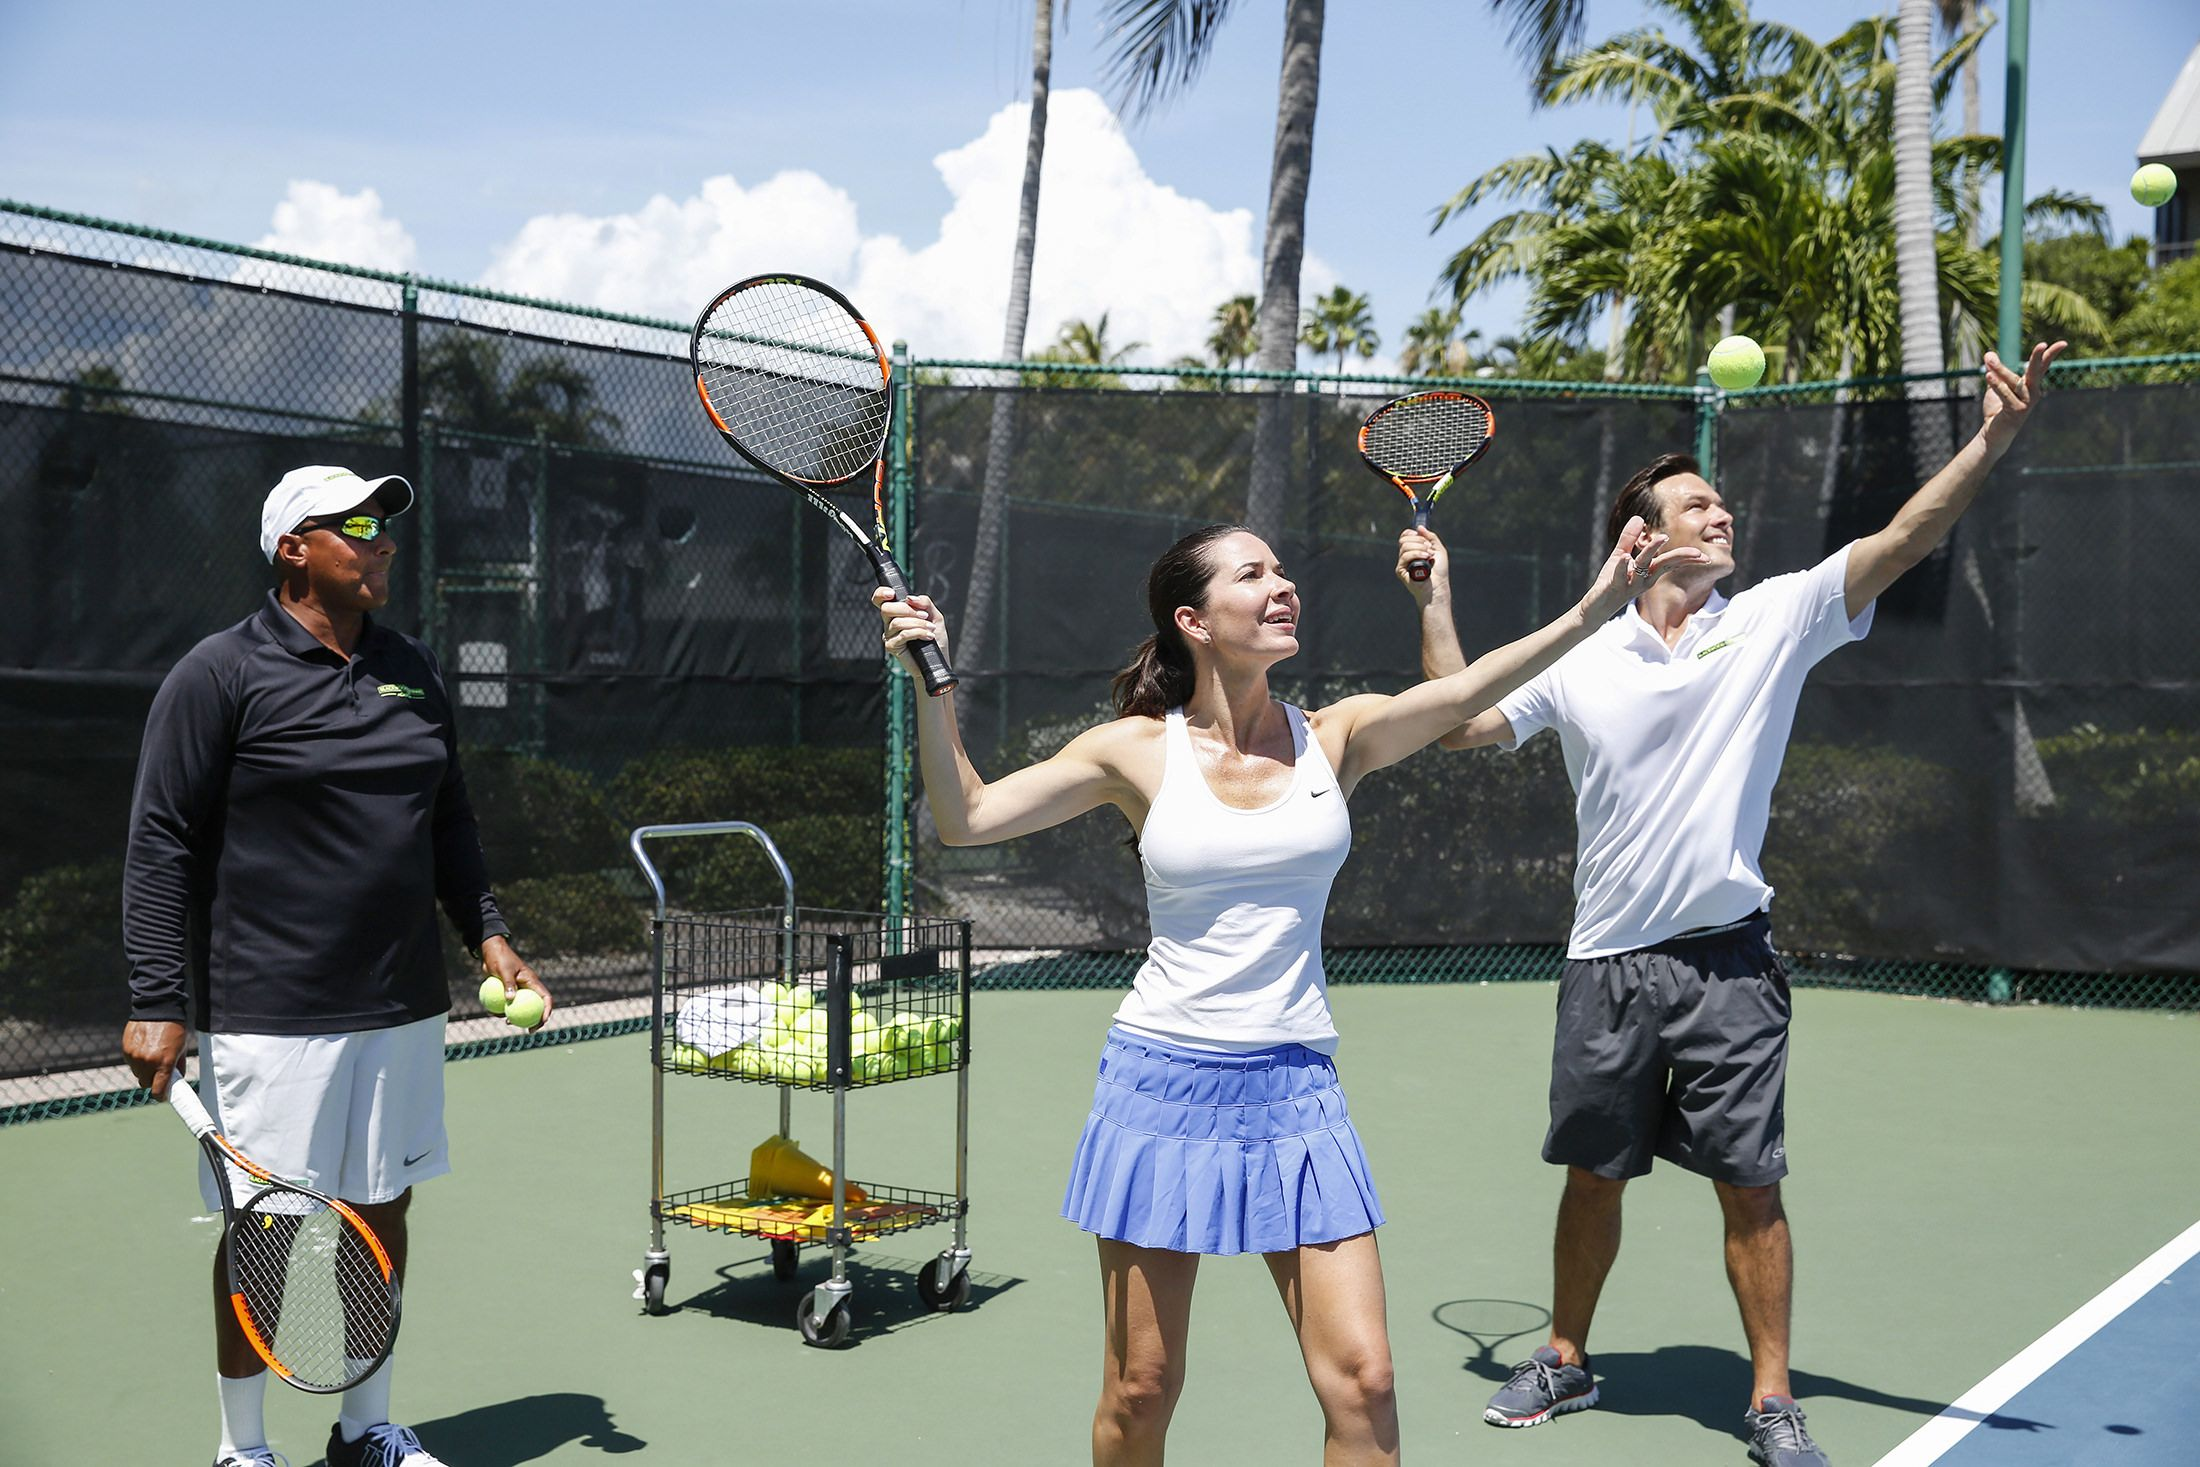 A couple learning to serve on a Sanibel tennis court